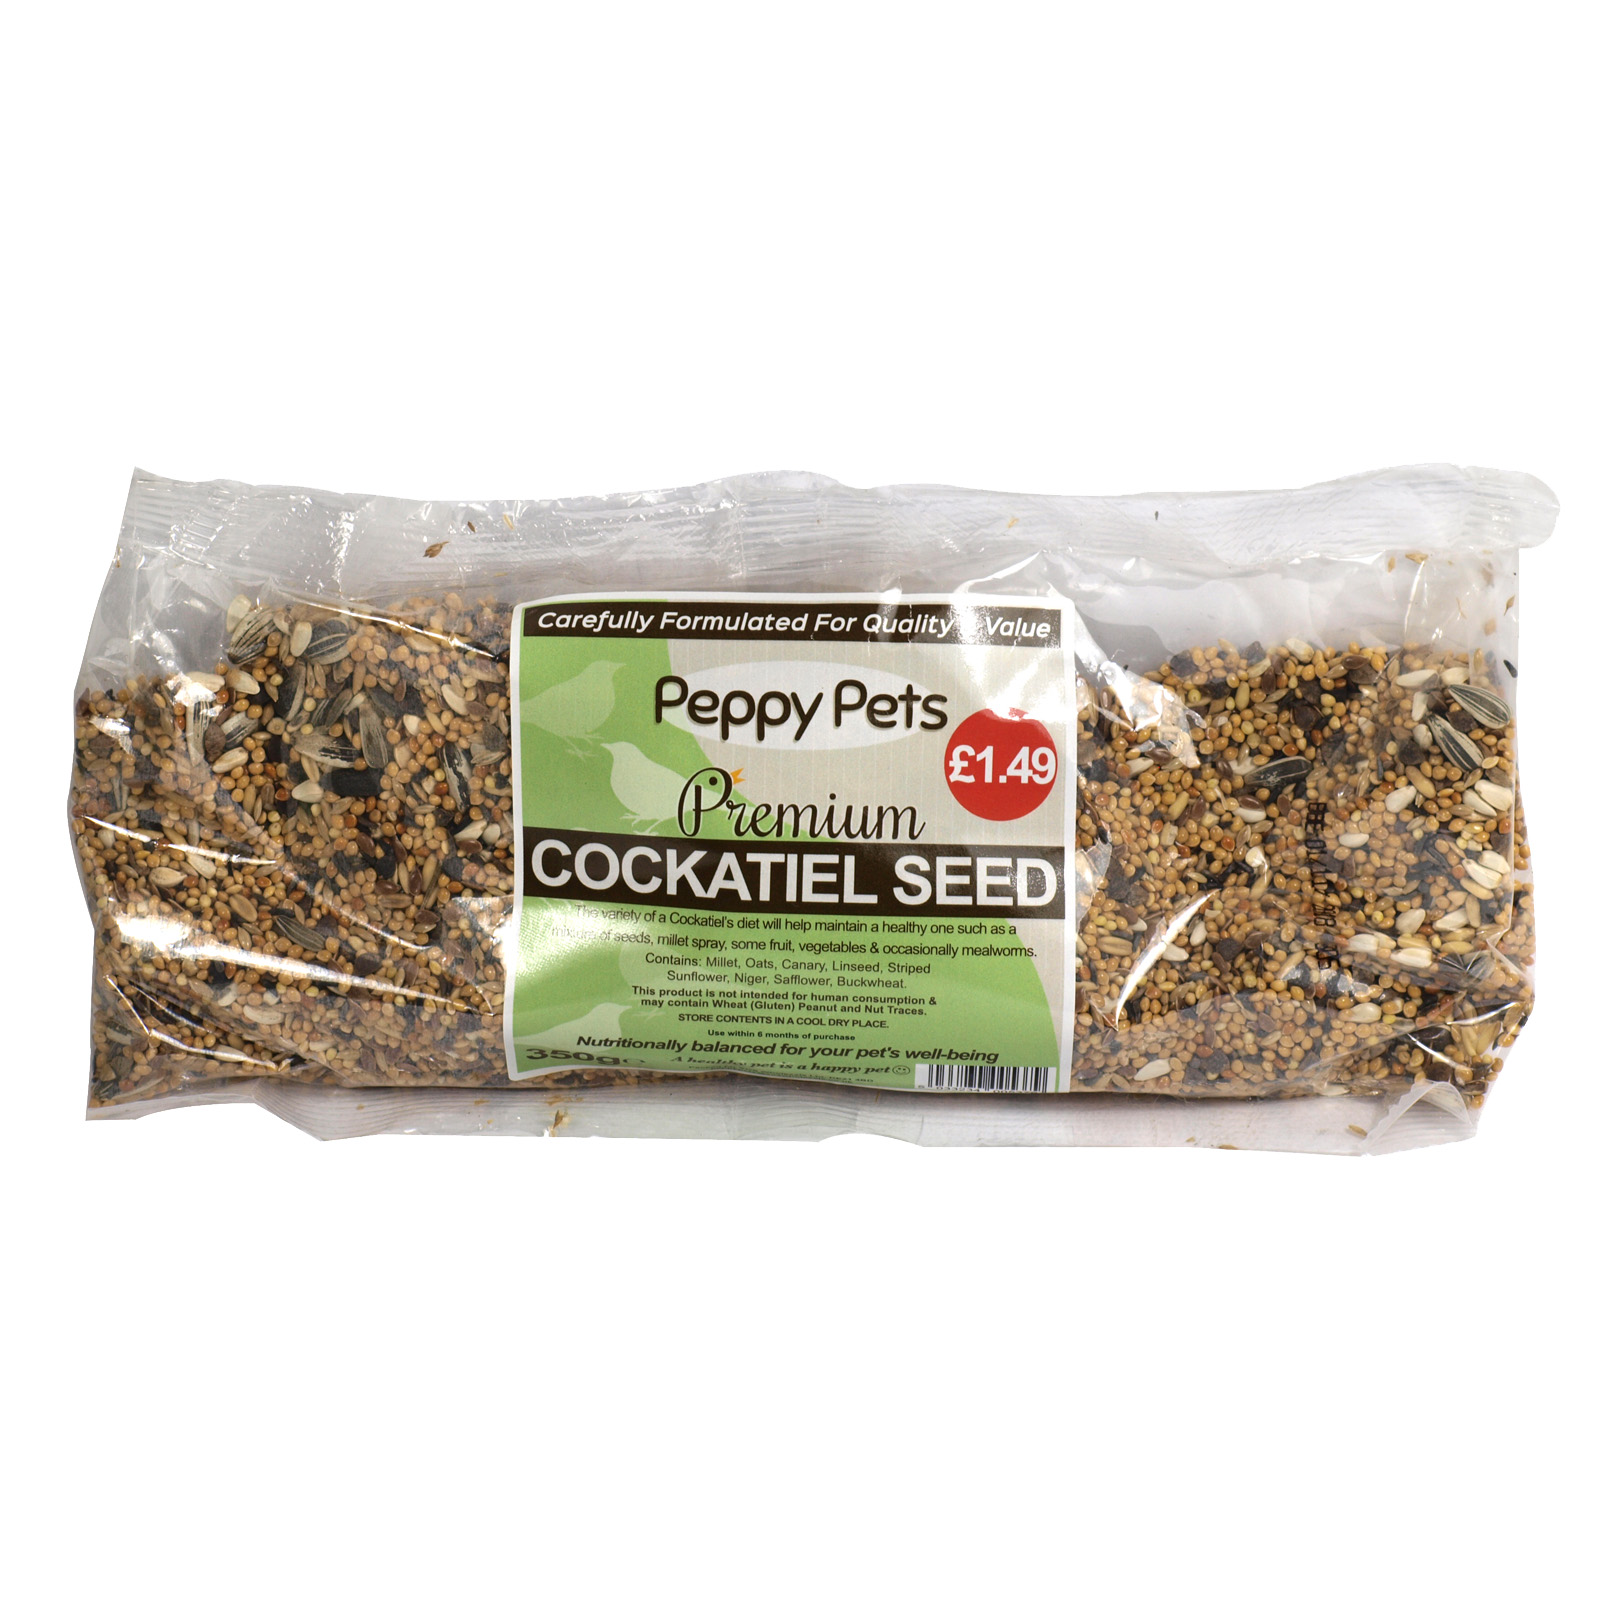 PEPPY PETS COCKATIEL SEED PM£1.49 350GM